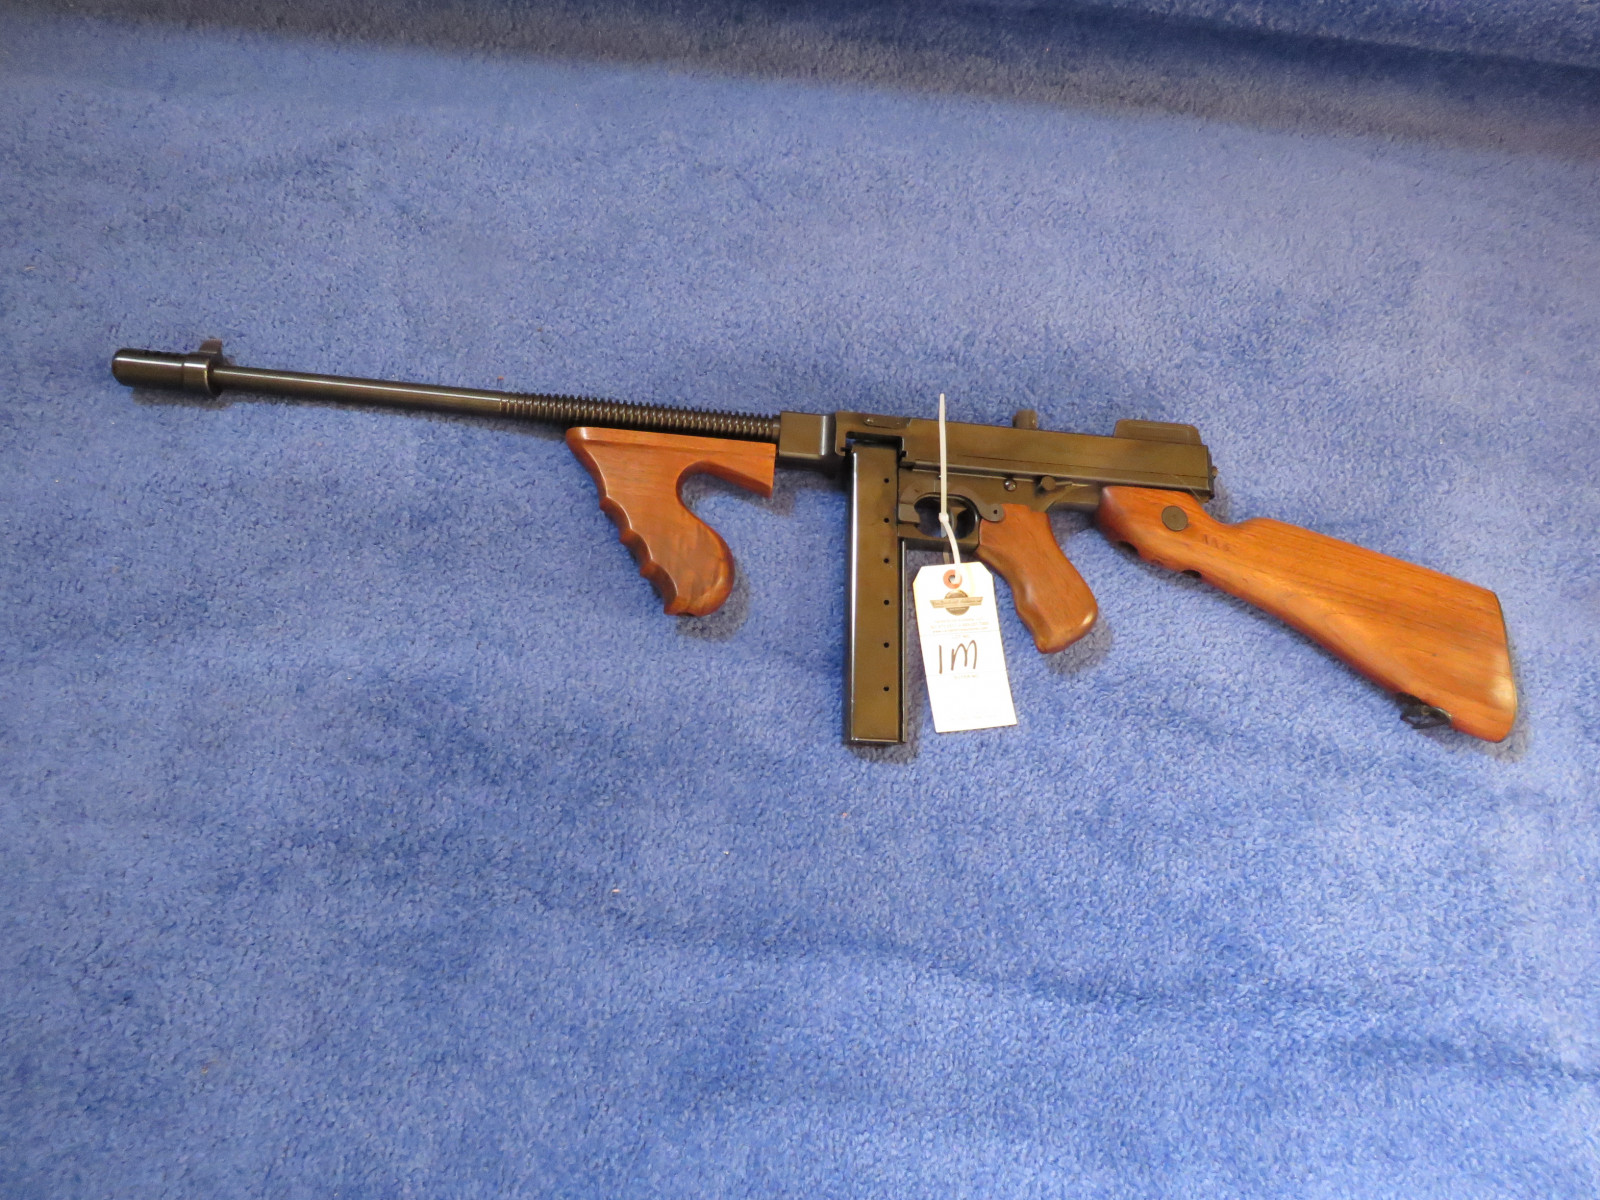 Thompson 1927 A1 Deluxe Semi-Automatic Rifle   29837 - Image 1